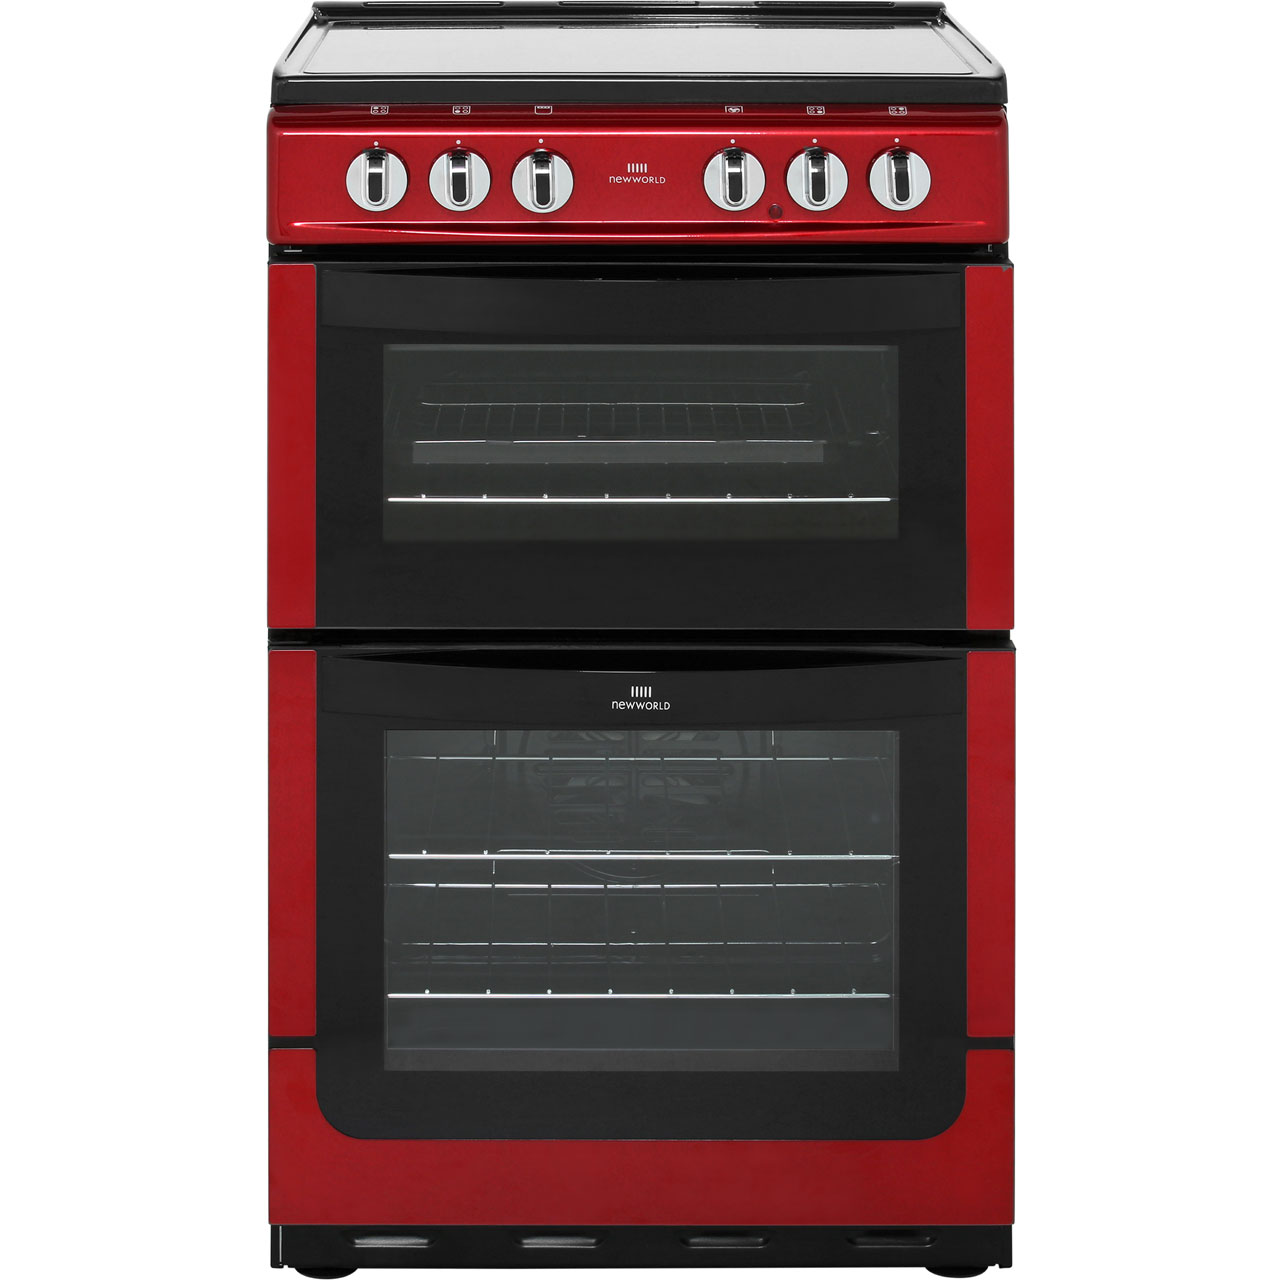 Newworld NW551ETC Electric Cooker with Ceramic Hob - Red